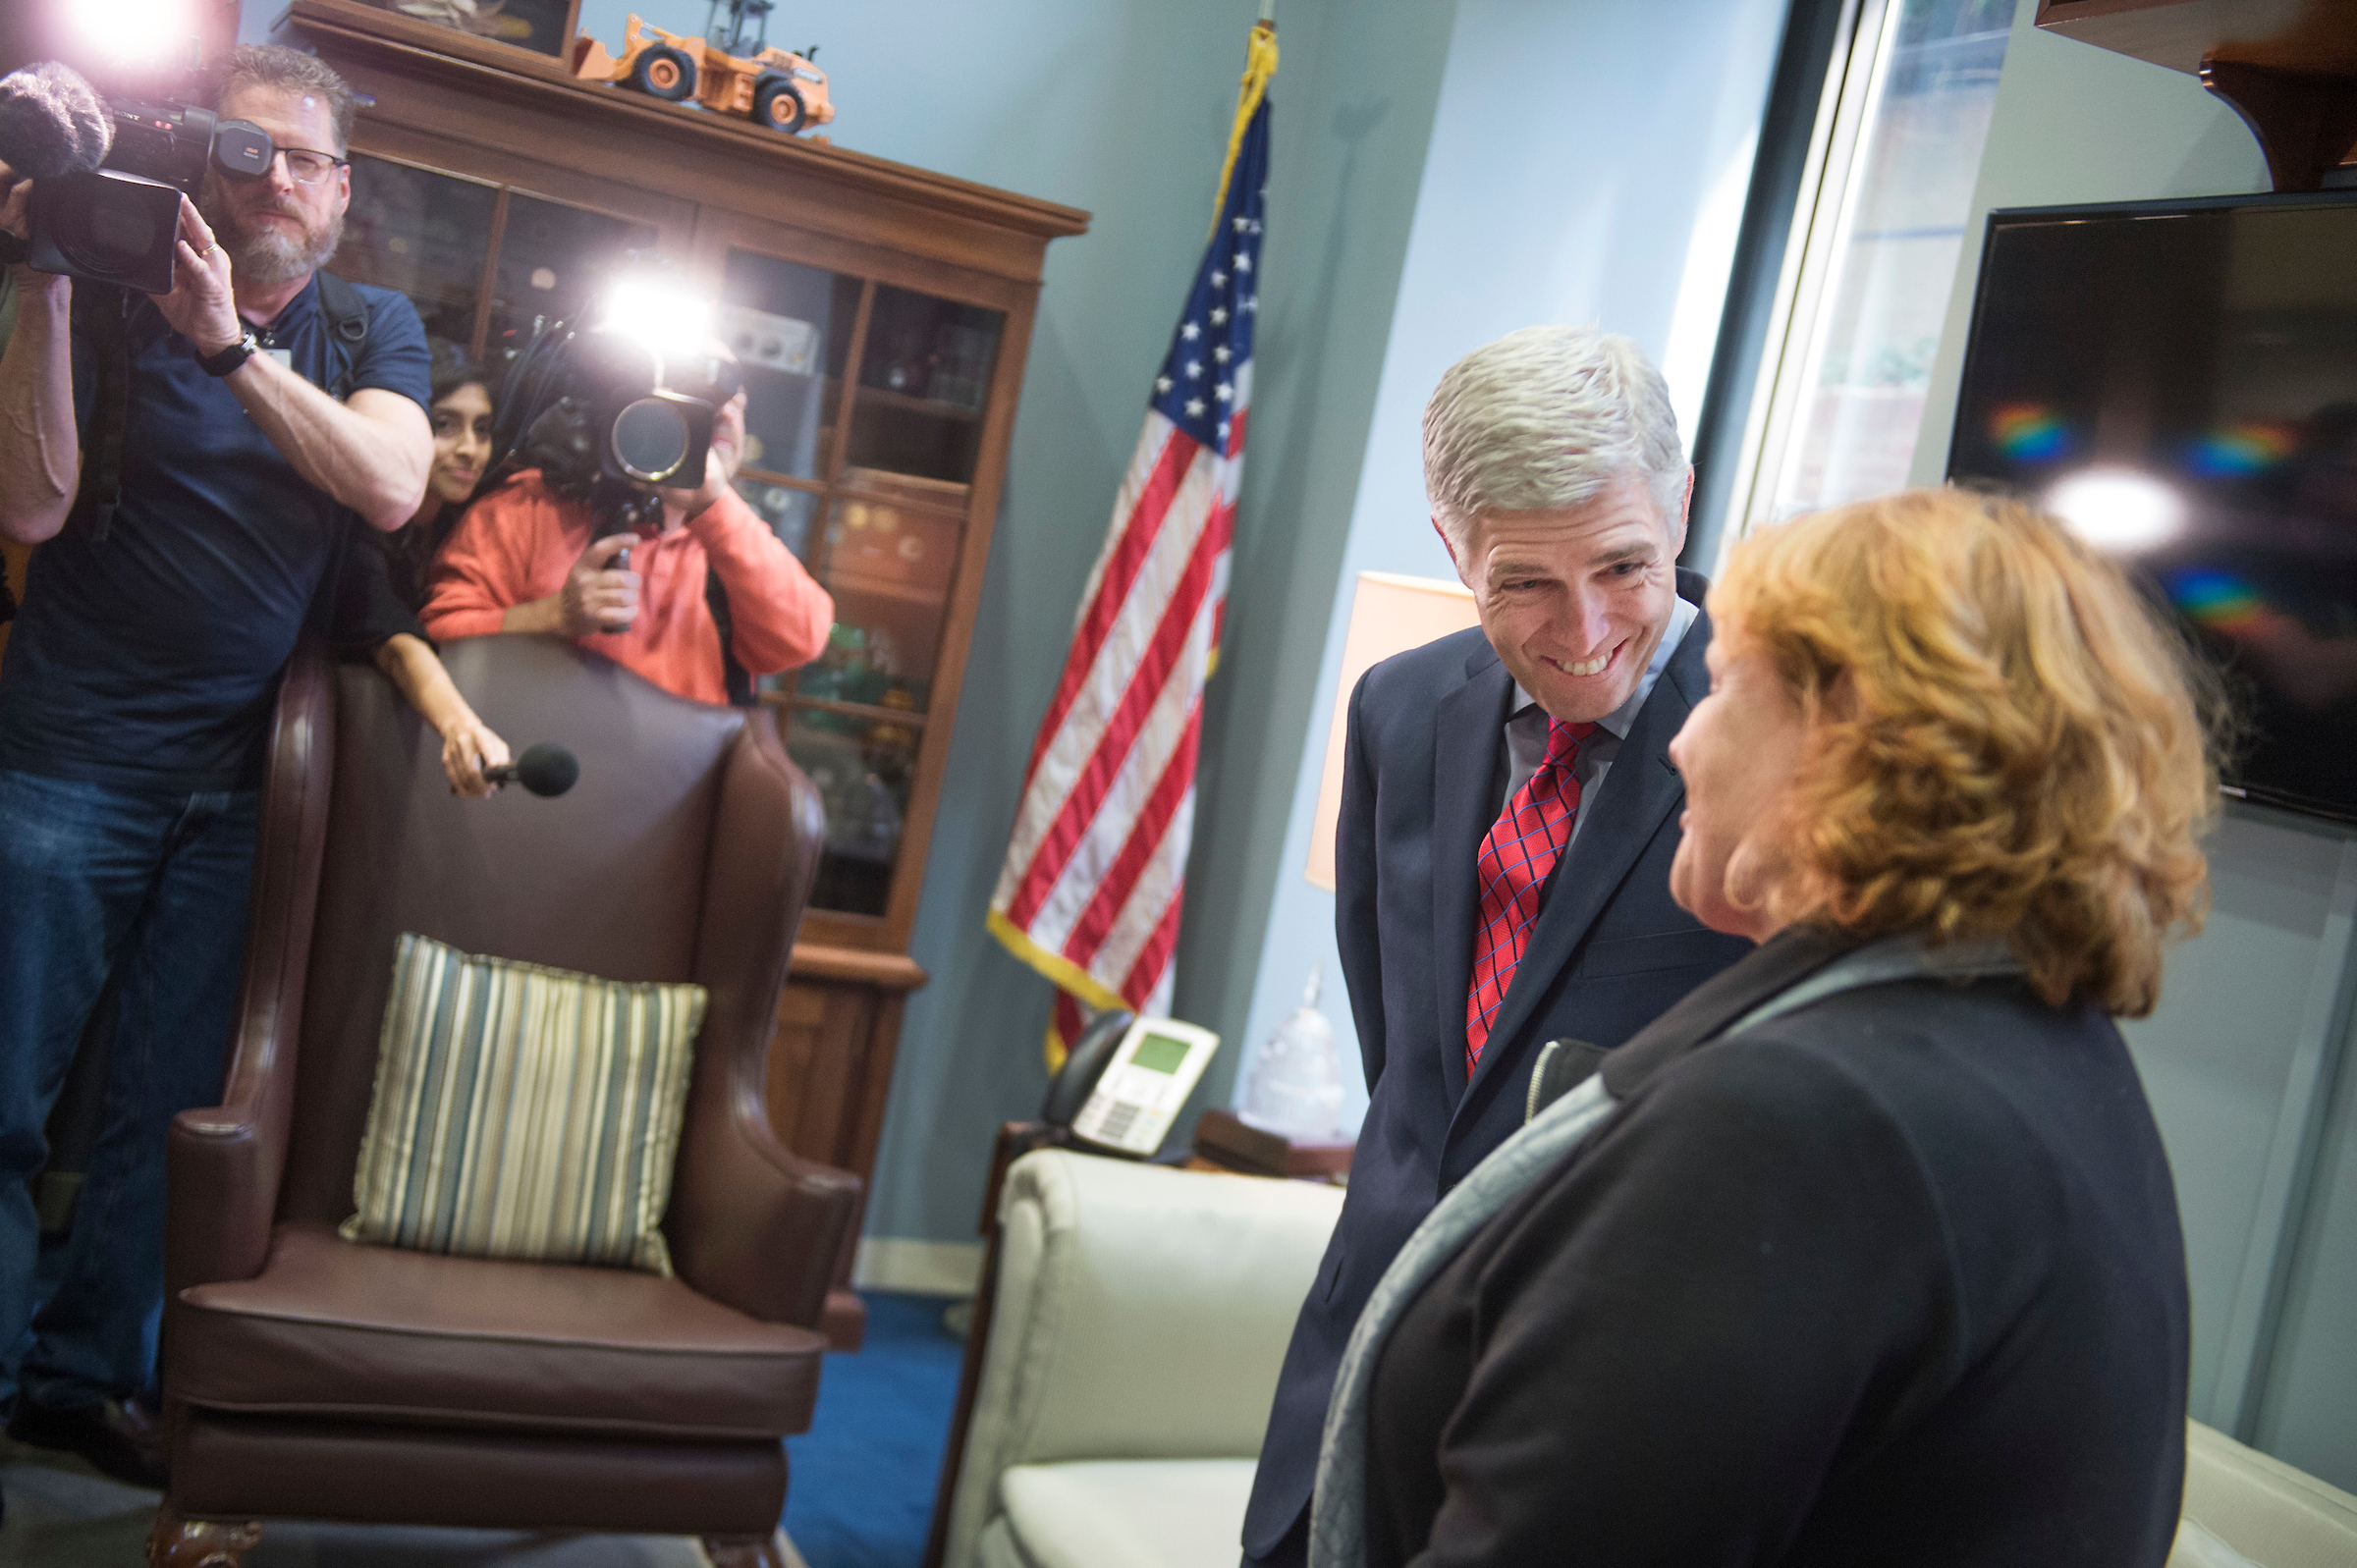 UNITED STATES - FEBRUARY 08: Neil Gorsuch, Supreme Court Justice nominee, meets with Sen. Heidi Heitkamp, D-N.D., in her Hart Building office, February 8, 2017. (Photo By Tom Williams/CQ Roll Call)